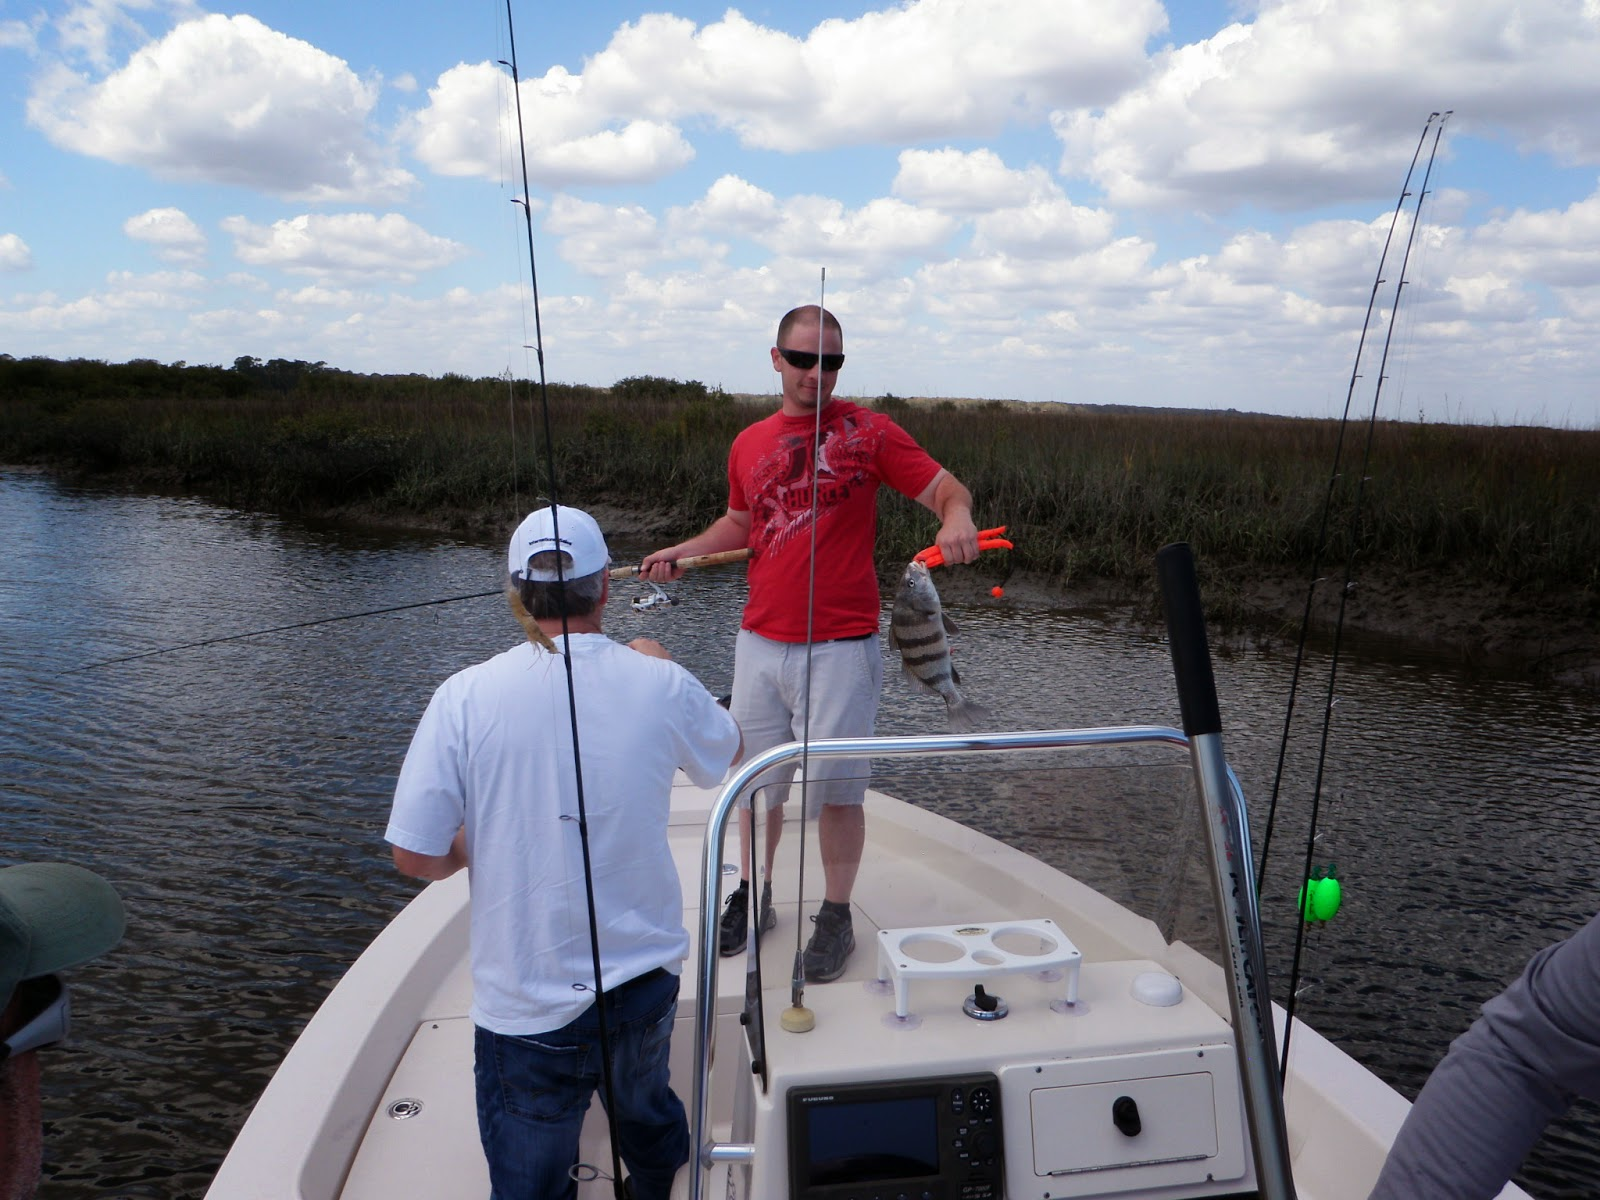 Treadster devil 39 s elbow fishing trip for Devils elbow fishing resort